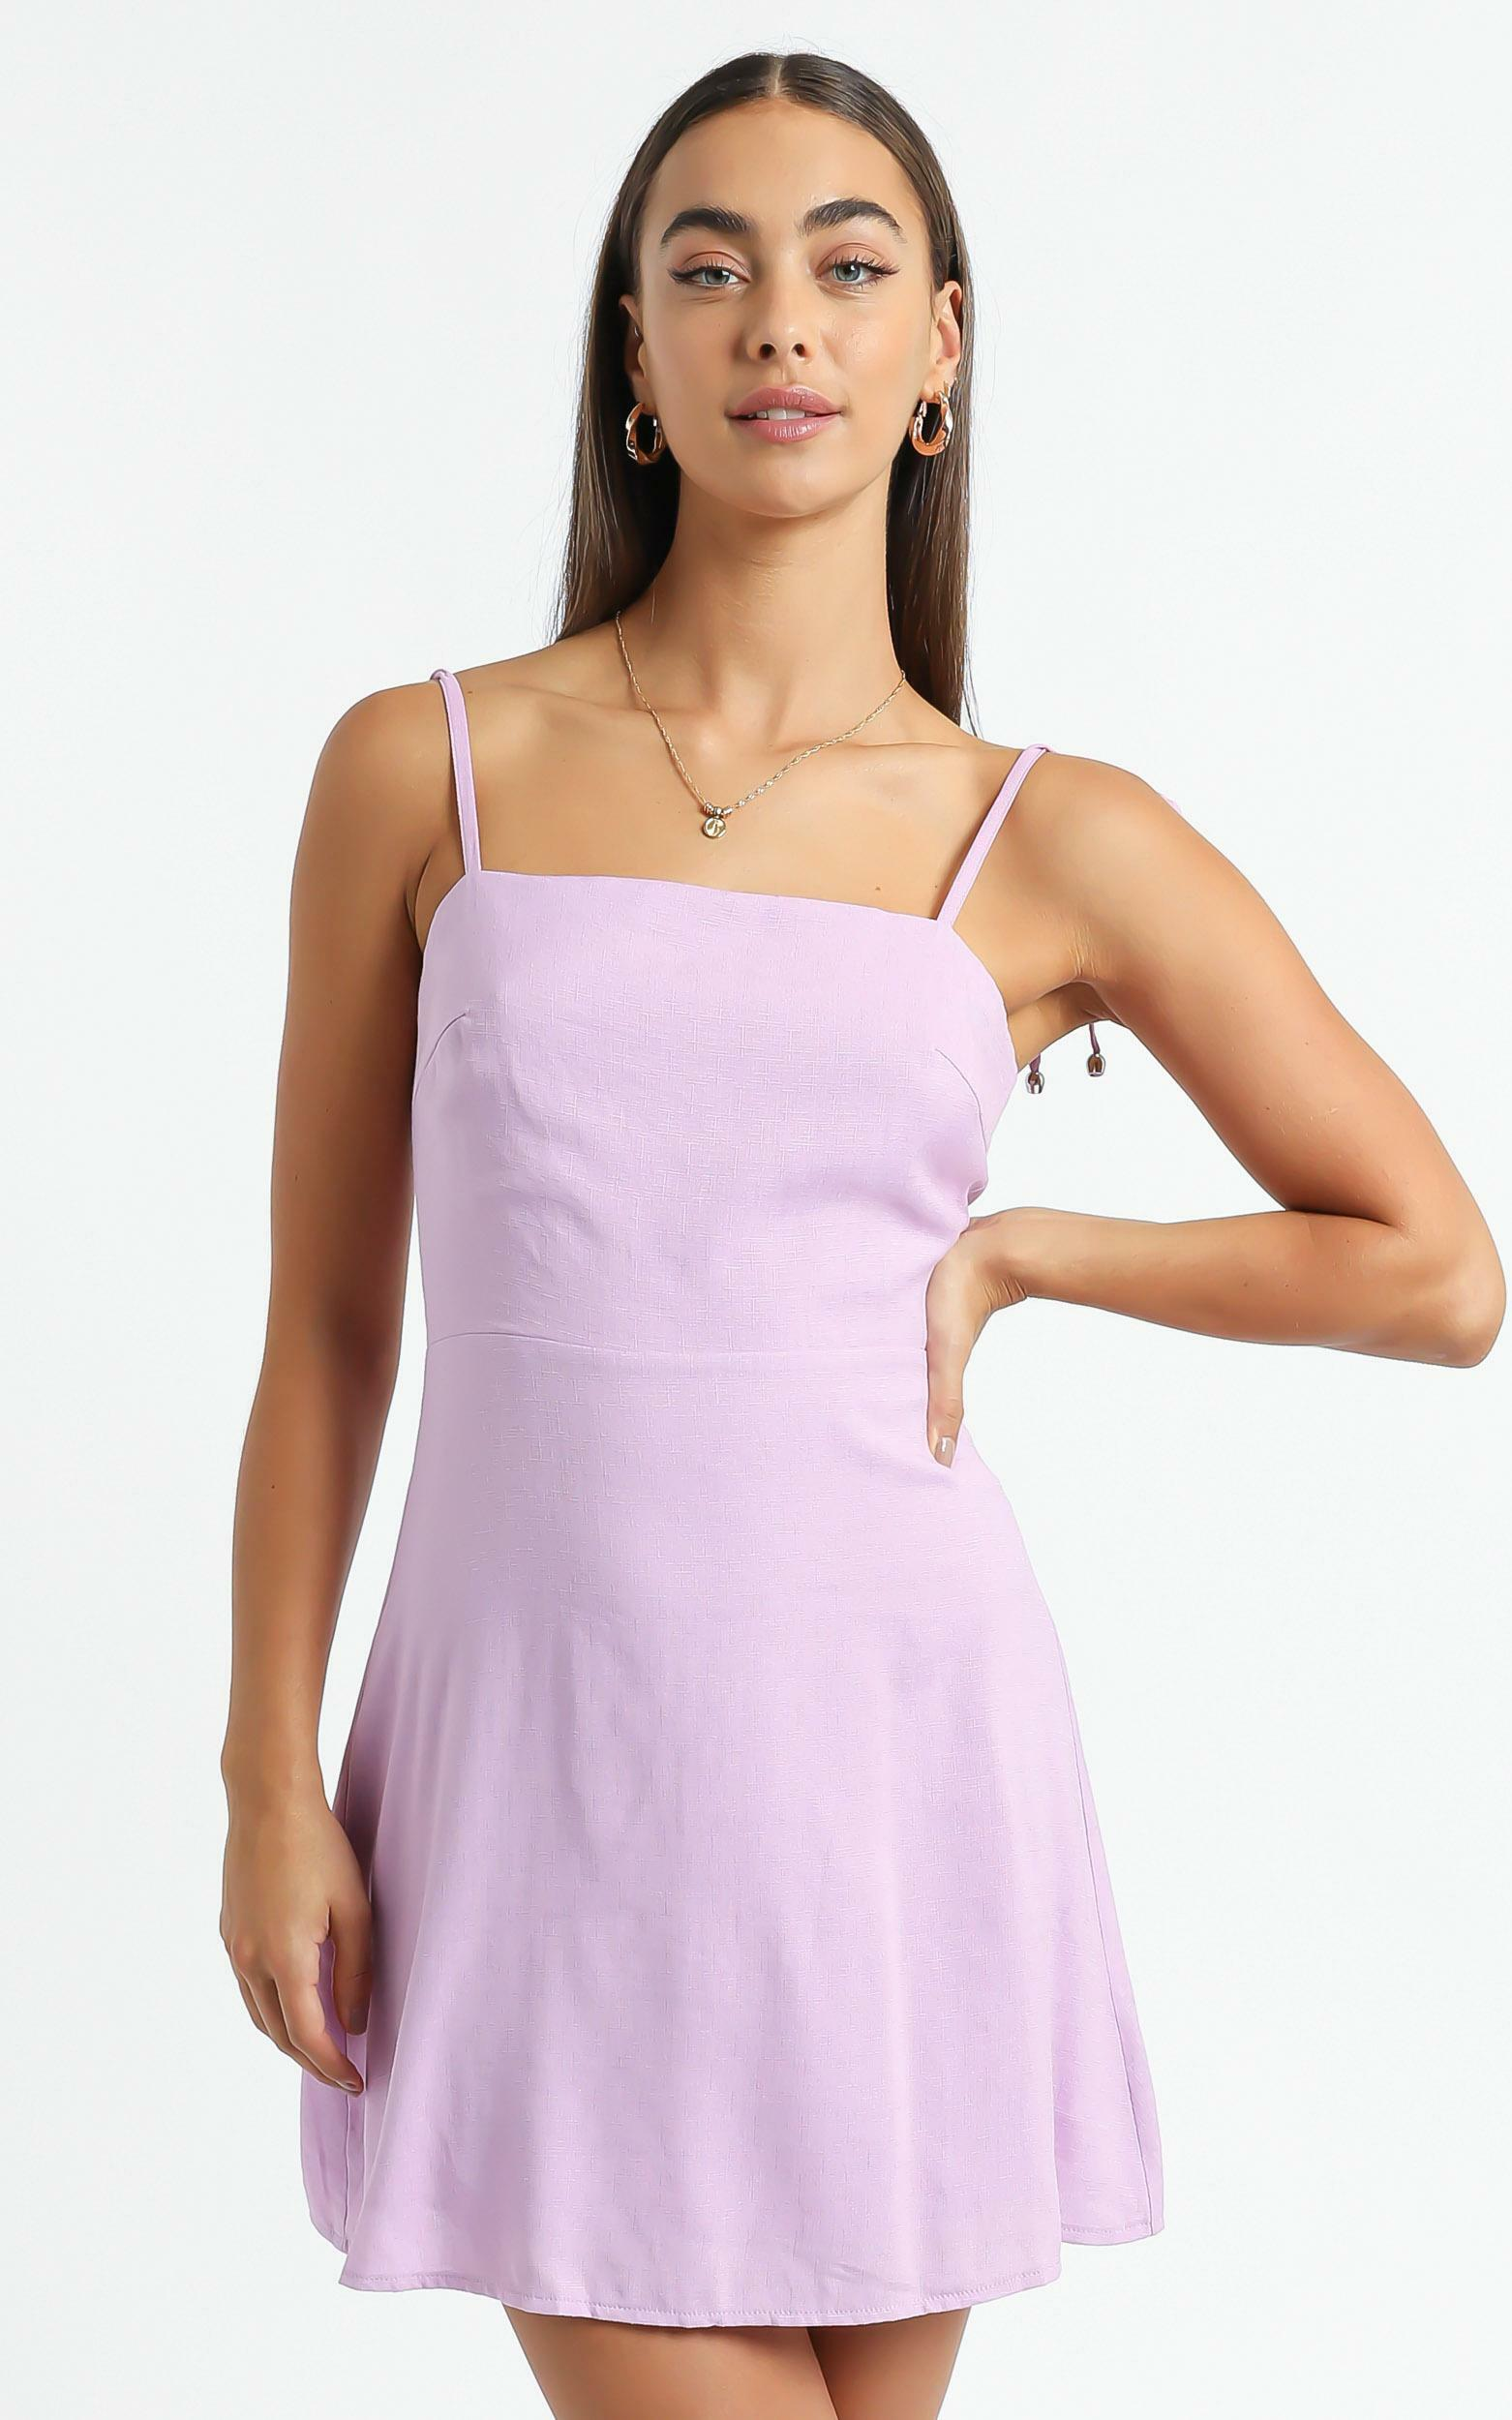 Afternoon Glow Dress in Lilac - 4 (XXS), Purple, hi-res image number null